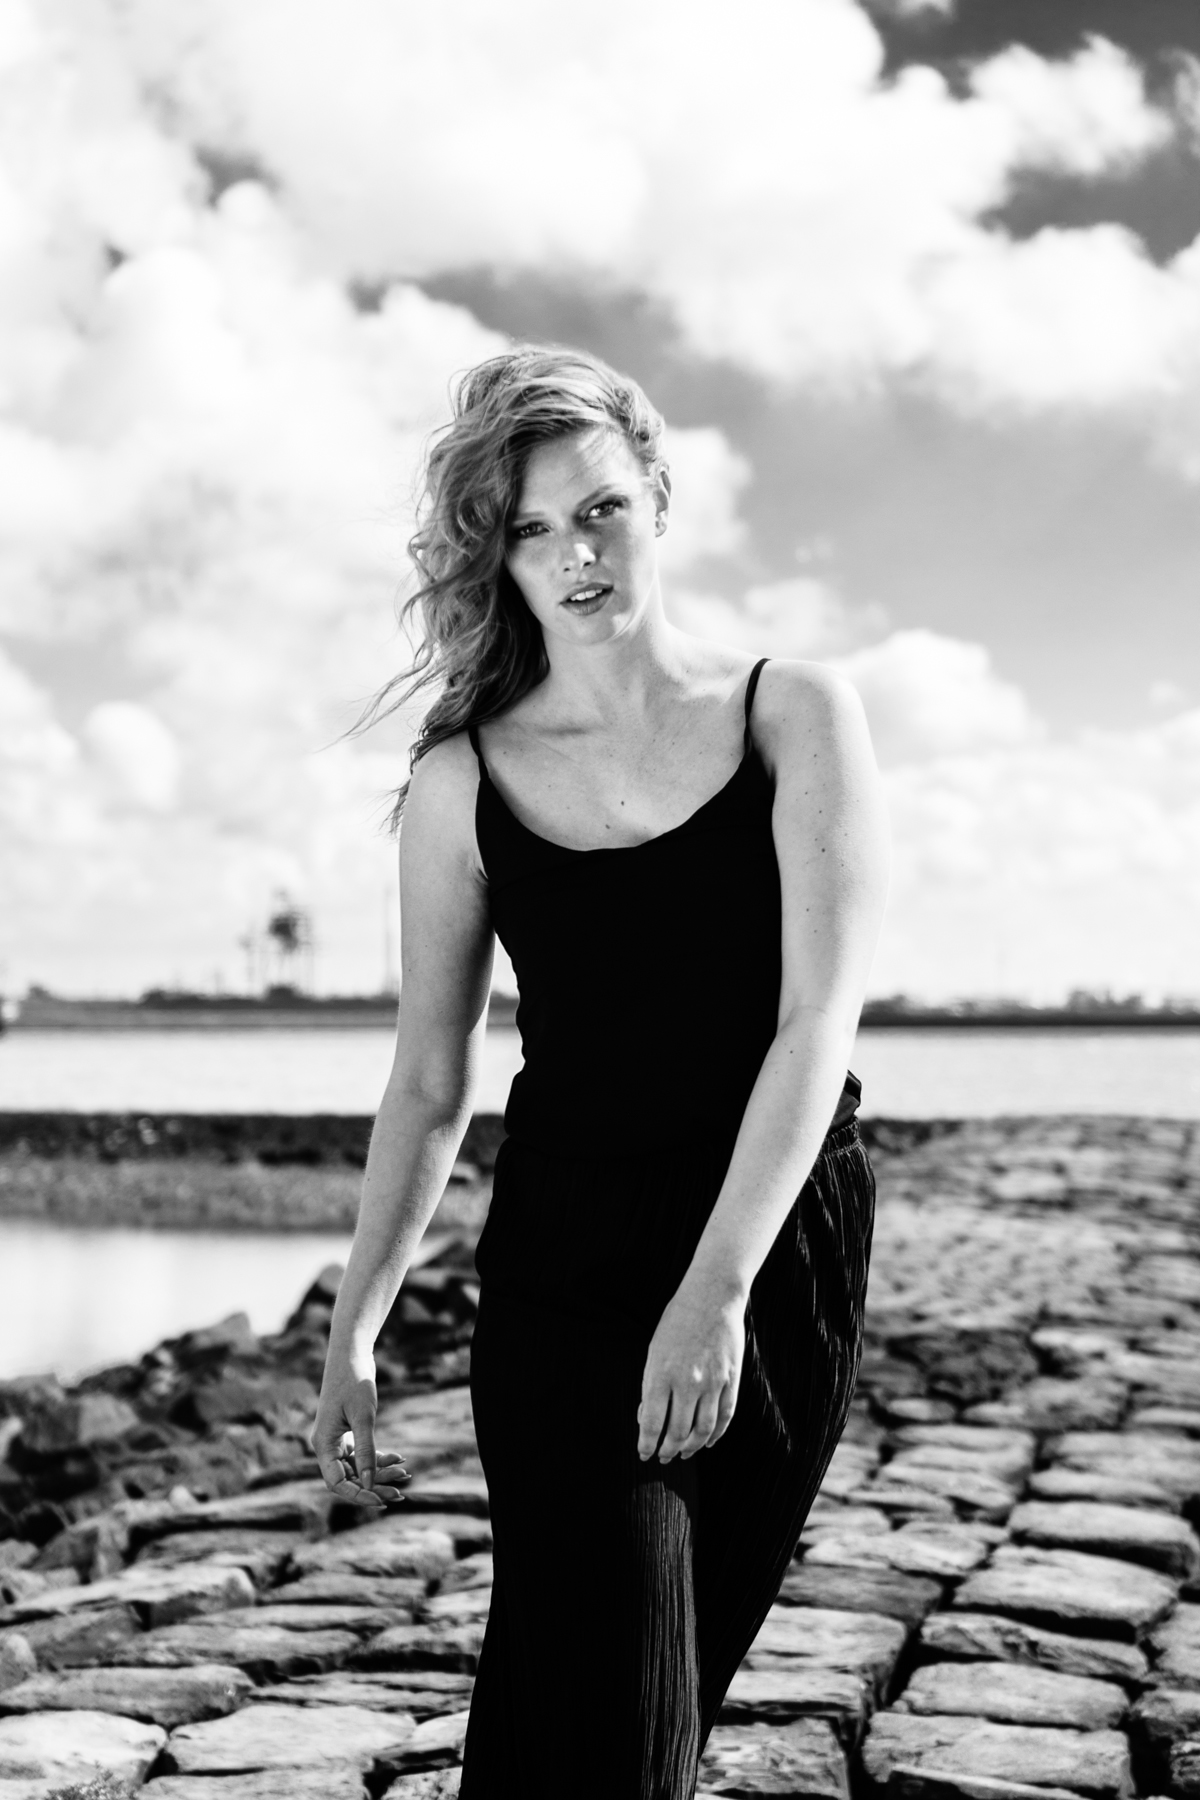 Fashion photoshoot at Hoek van Holland